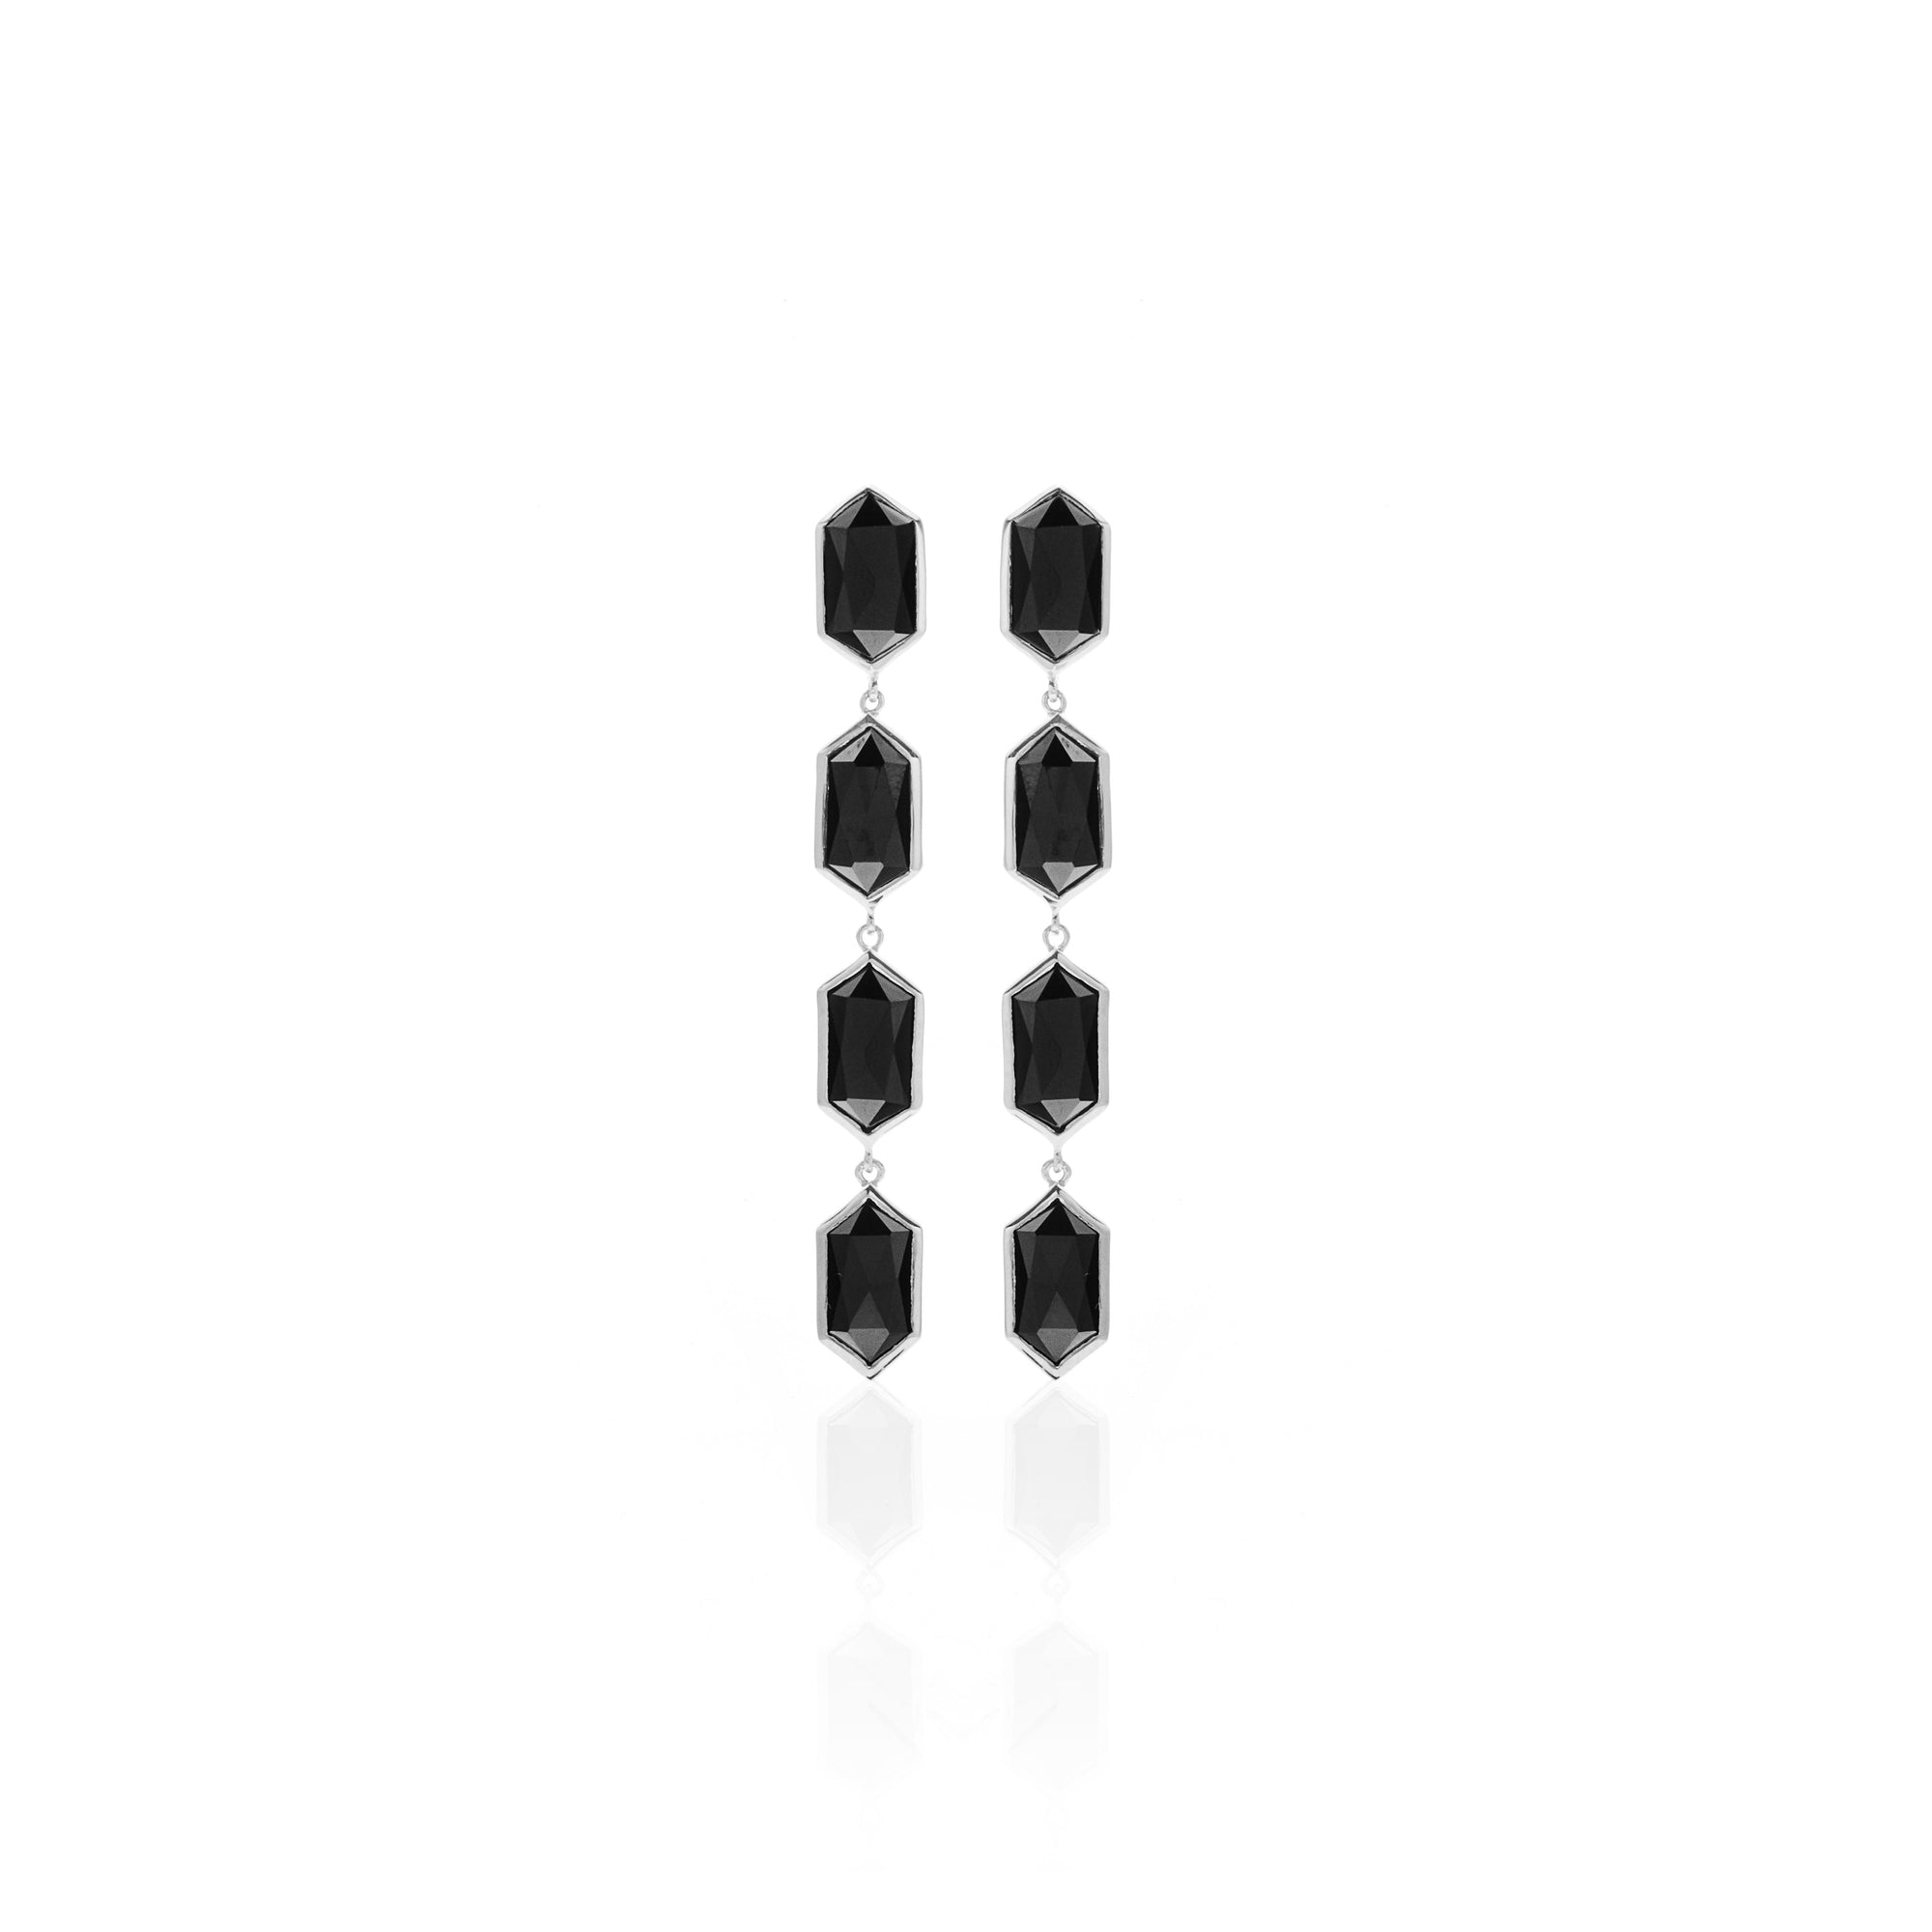 Silk&Steel Jewellery Reign Earrings Black Spinel and Silver from Haveli Collection